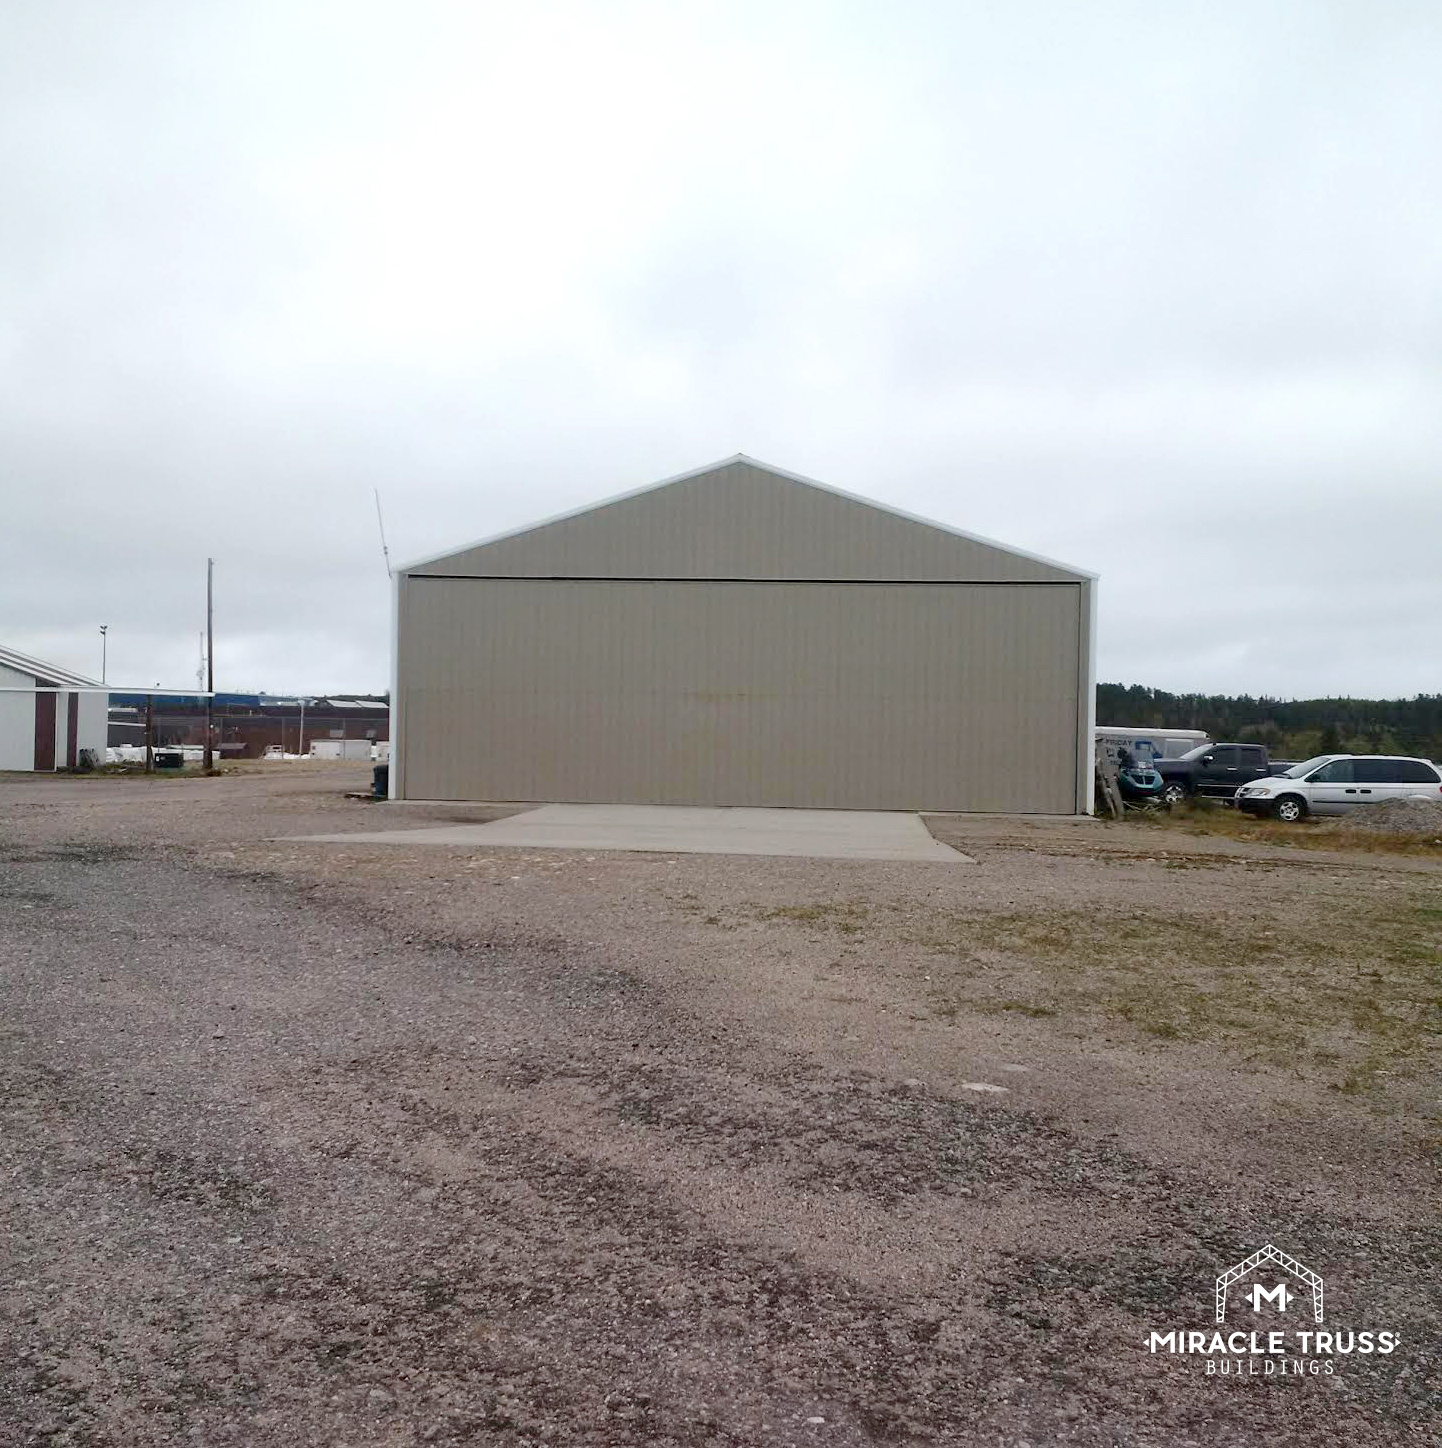 Steel Building Kits And Metal Buildings By Steel Building: Aircraft Pre-Fabricated Hangar Building Kits